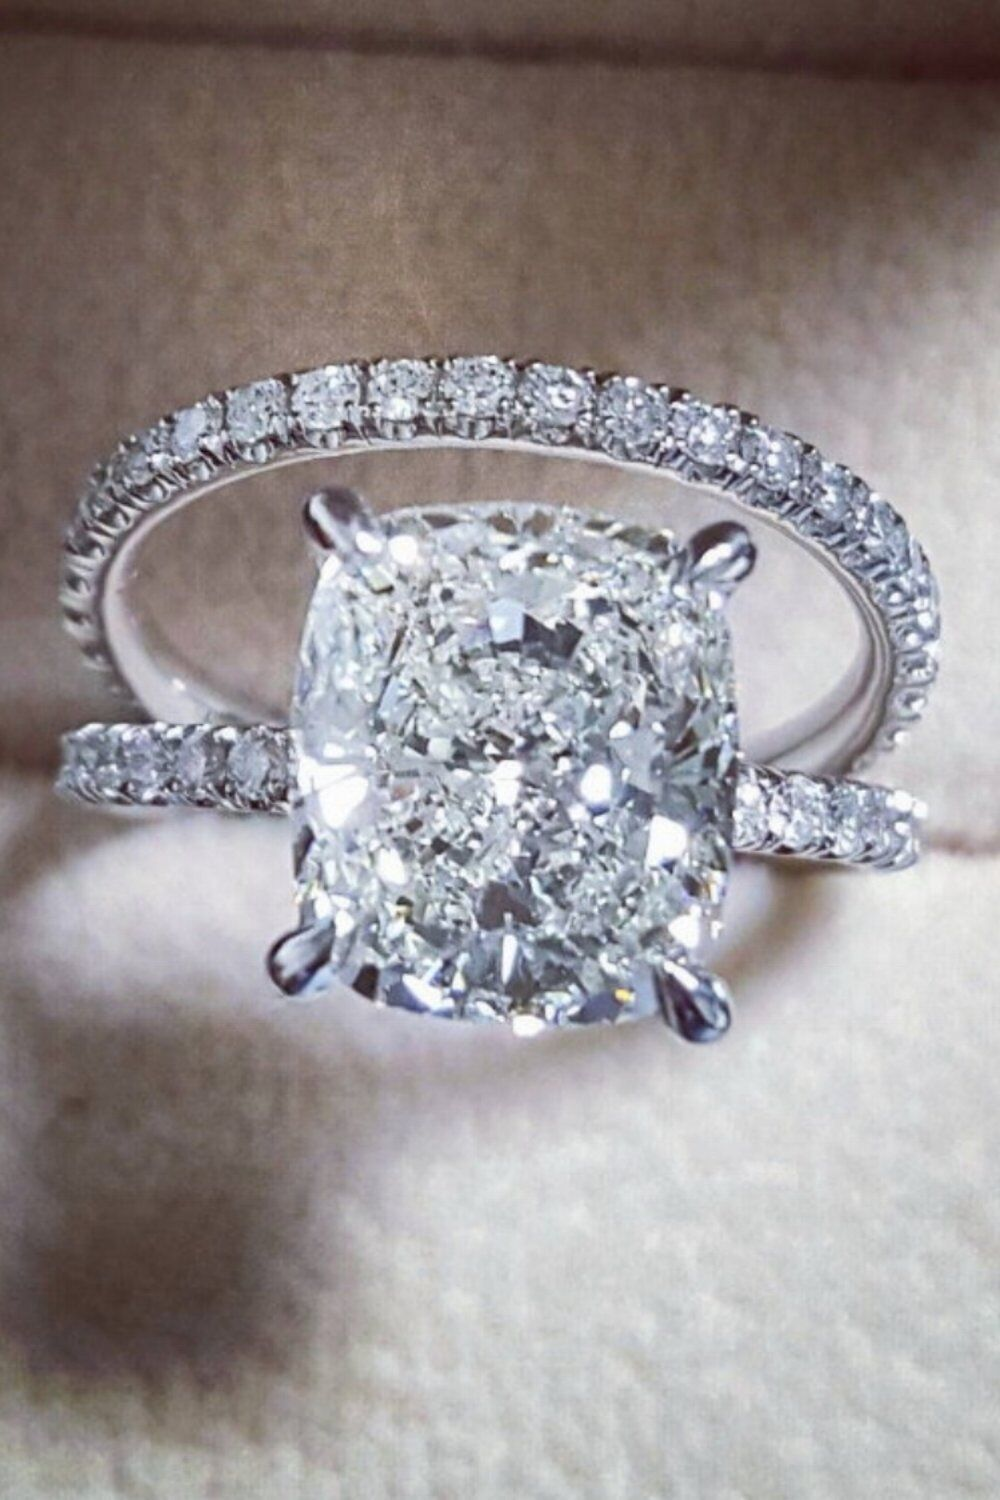 18K WG 2.10 Ct Cushion Cut Diamond Round Pave Engagement Ring Set G,SI1 GIA 4